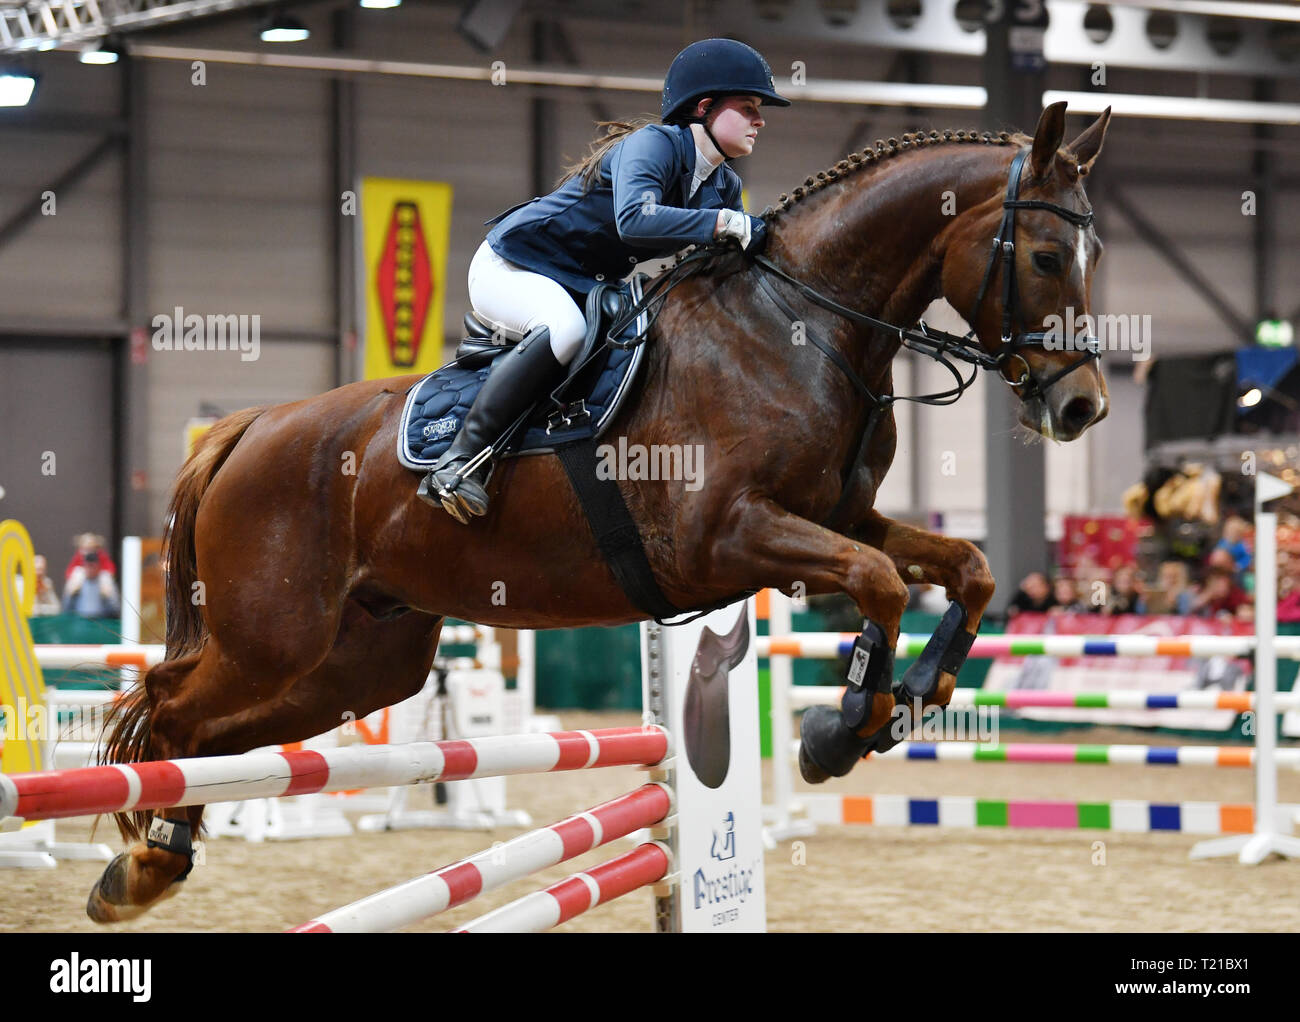 29 March 2019, Thuringia, Erfurt: Lena Gerth takes part with her horse Quickly 28 in the youth jumping competition for style jumping at the fairs 'Reiten-Jagen-Fischen' and 'Forst³'. Around 240 exhibitors from 11 countries will be presenting themselves in the Erfurt exhibition halls until 31 March. The new trade fair 'Forst³' is dedicated to topics from the forestry and timber industry. Photo: Martin Schutt/dpa-Zentralbild/dpa - Stock Image